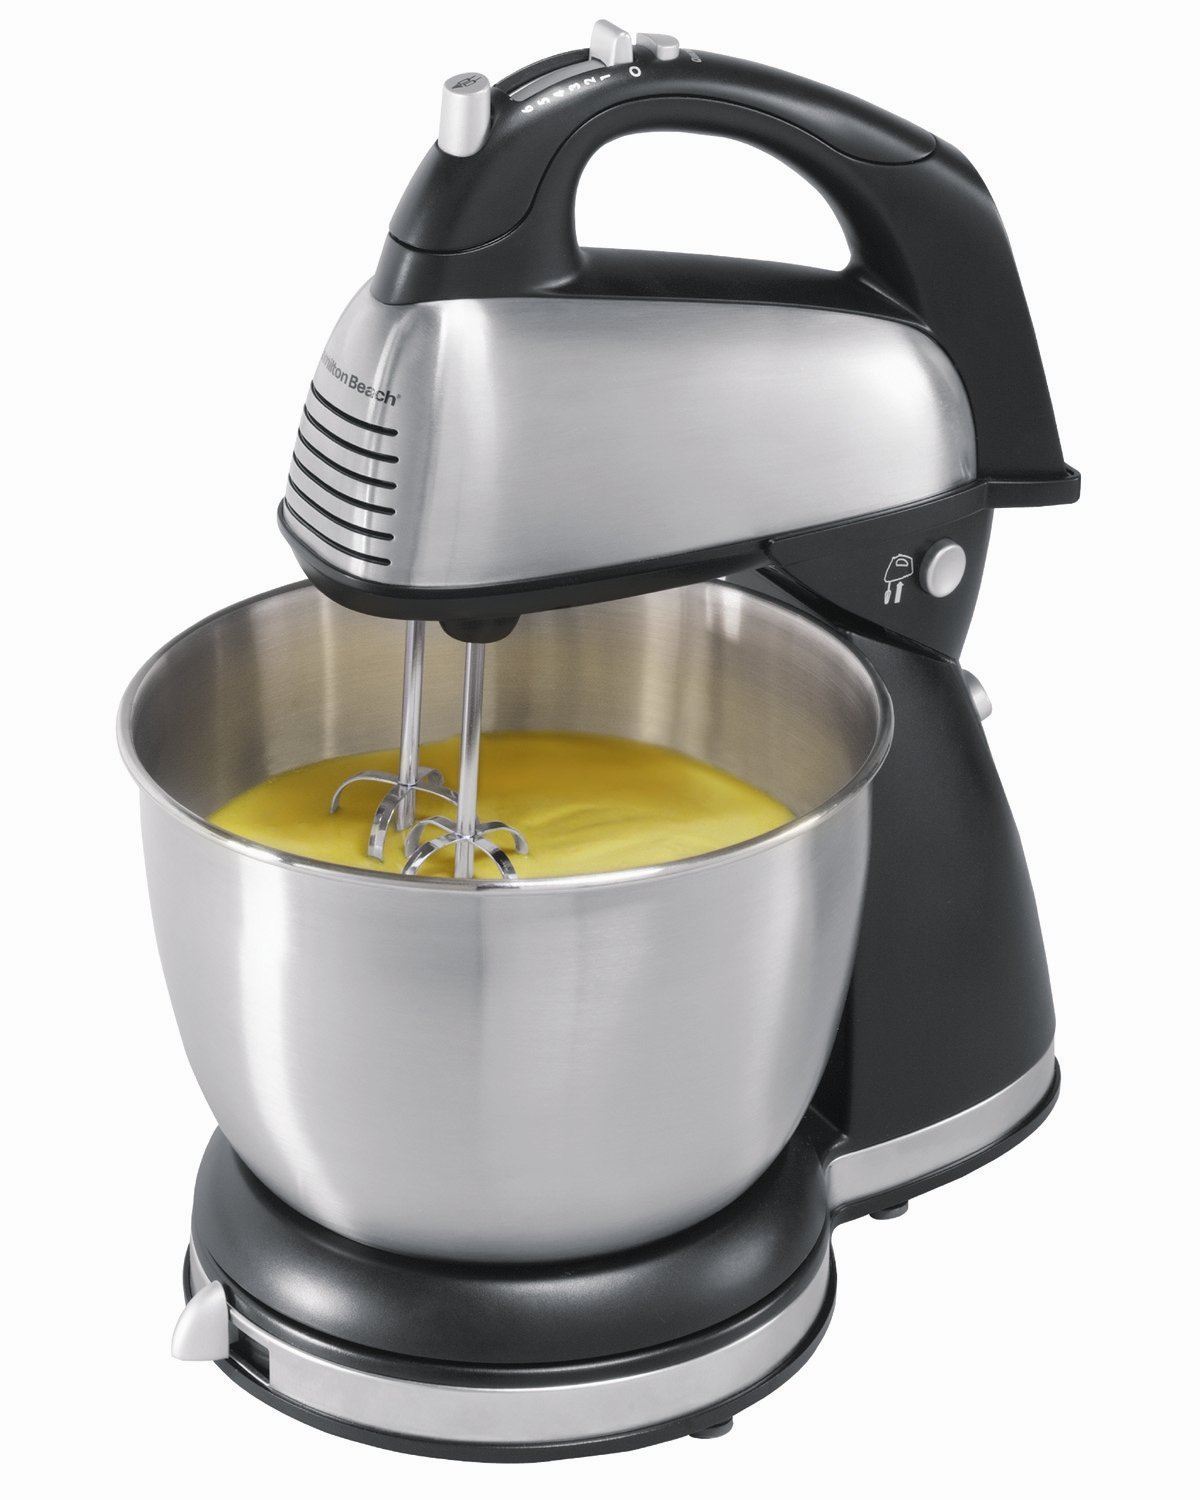 Premium Stand Mixer for All Household Mixers in Hamilton Beach Free Standing Electric Classic Design